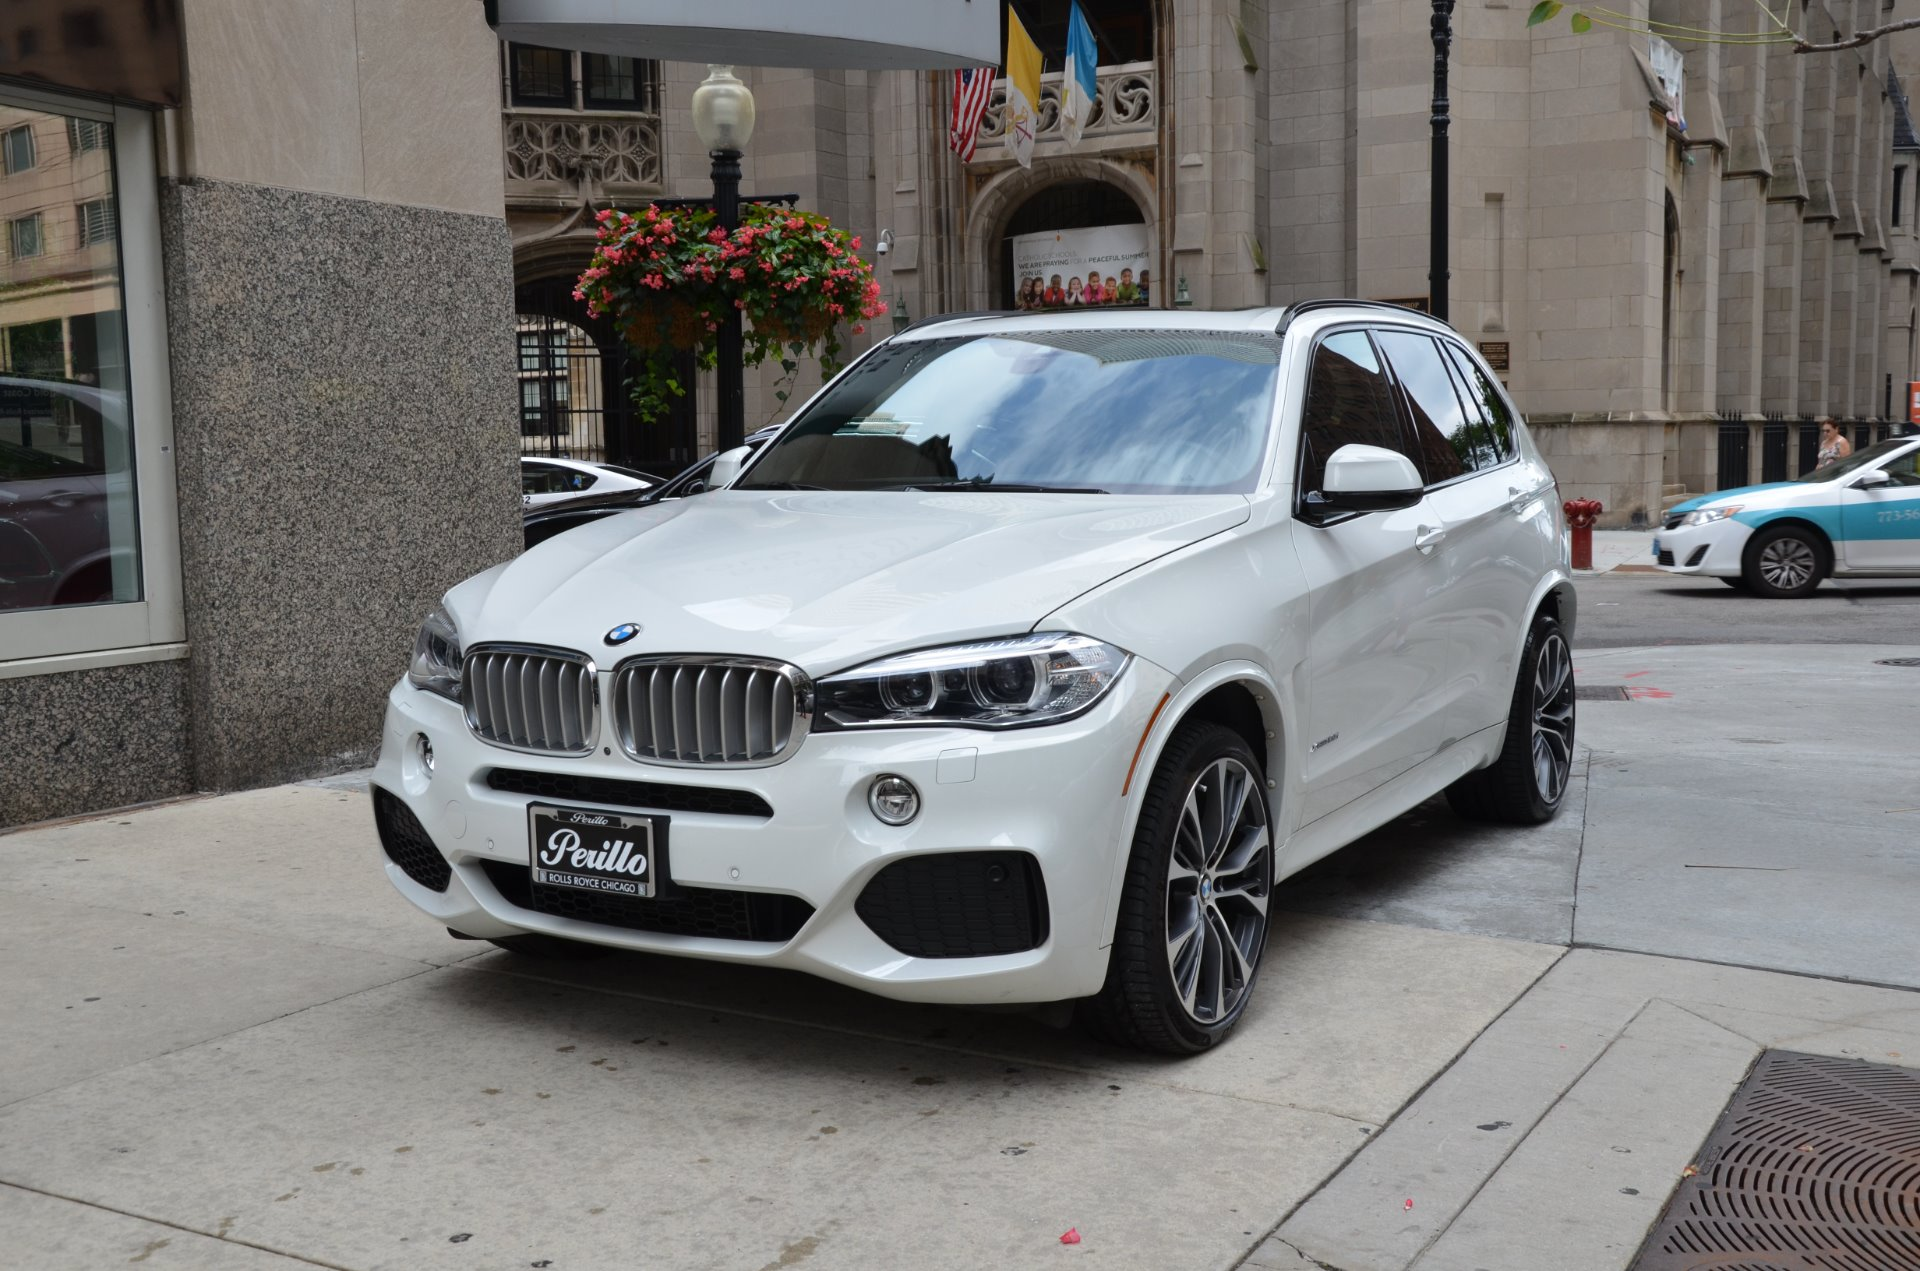 2014 Bmw X5 Xdrive50i Stock R274aba For Sale Near